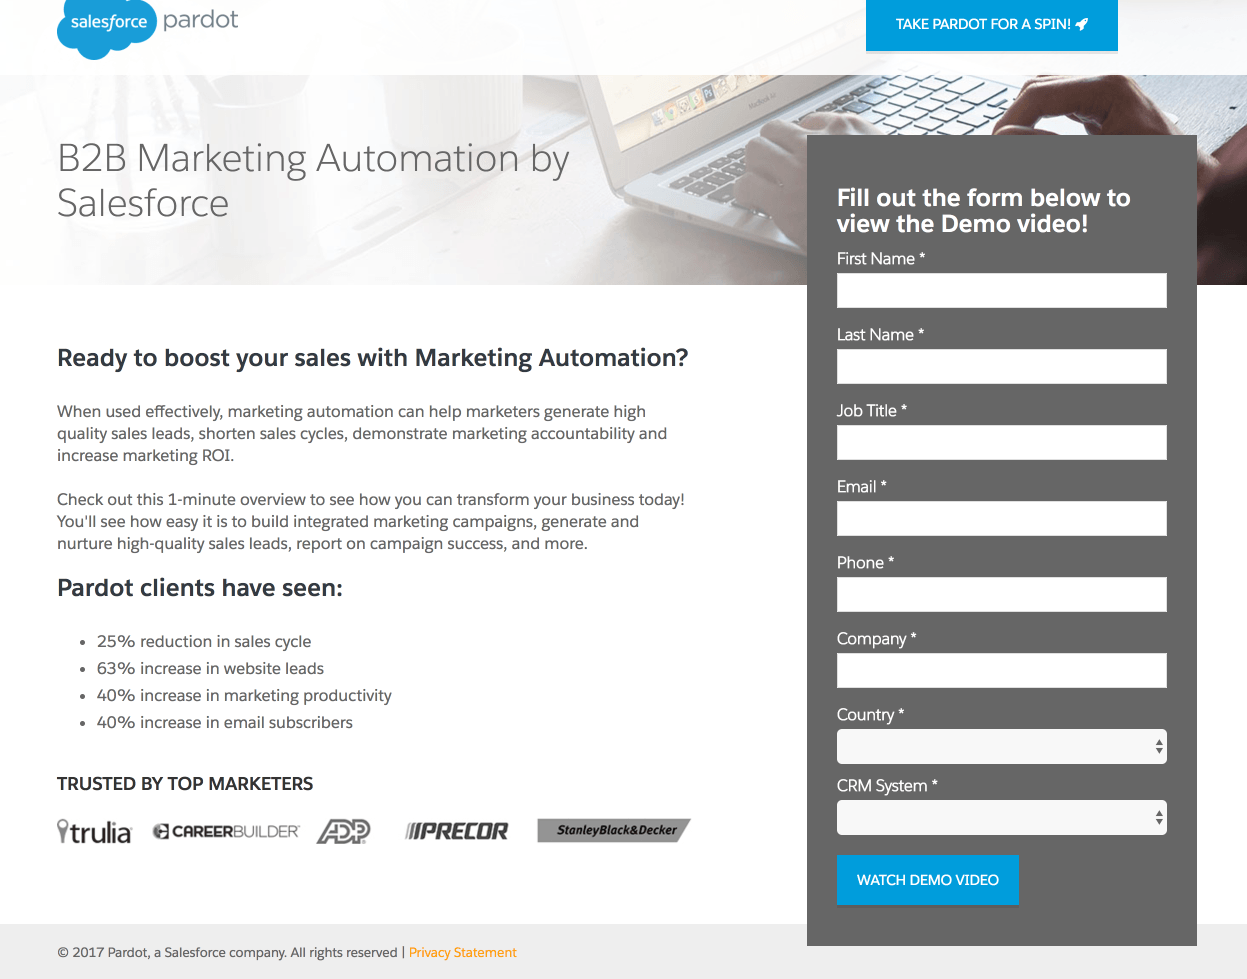 7 Pardot Landing Pages That Get Potential Customers to Act